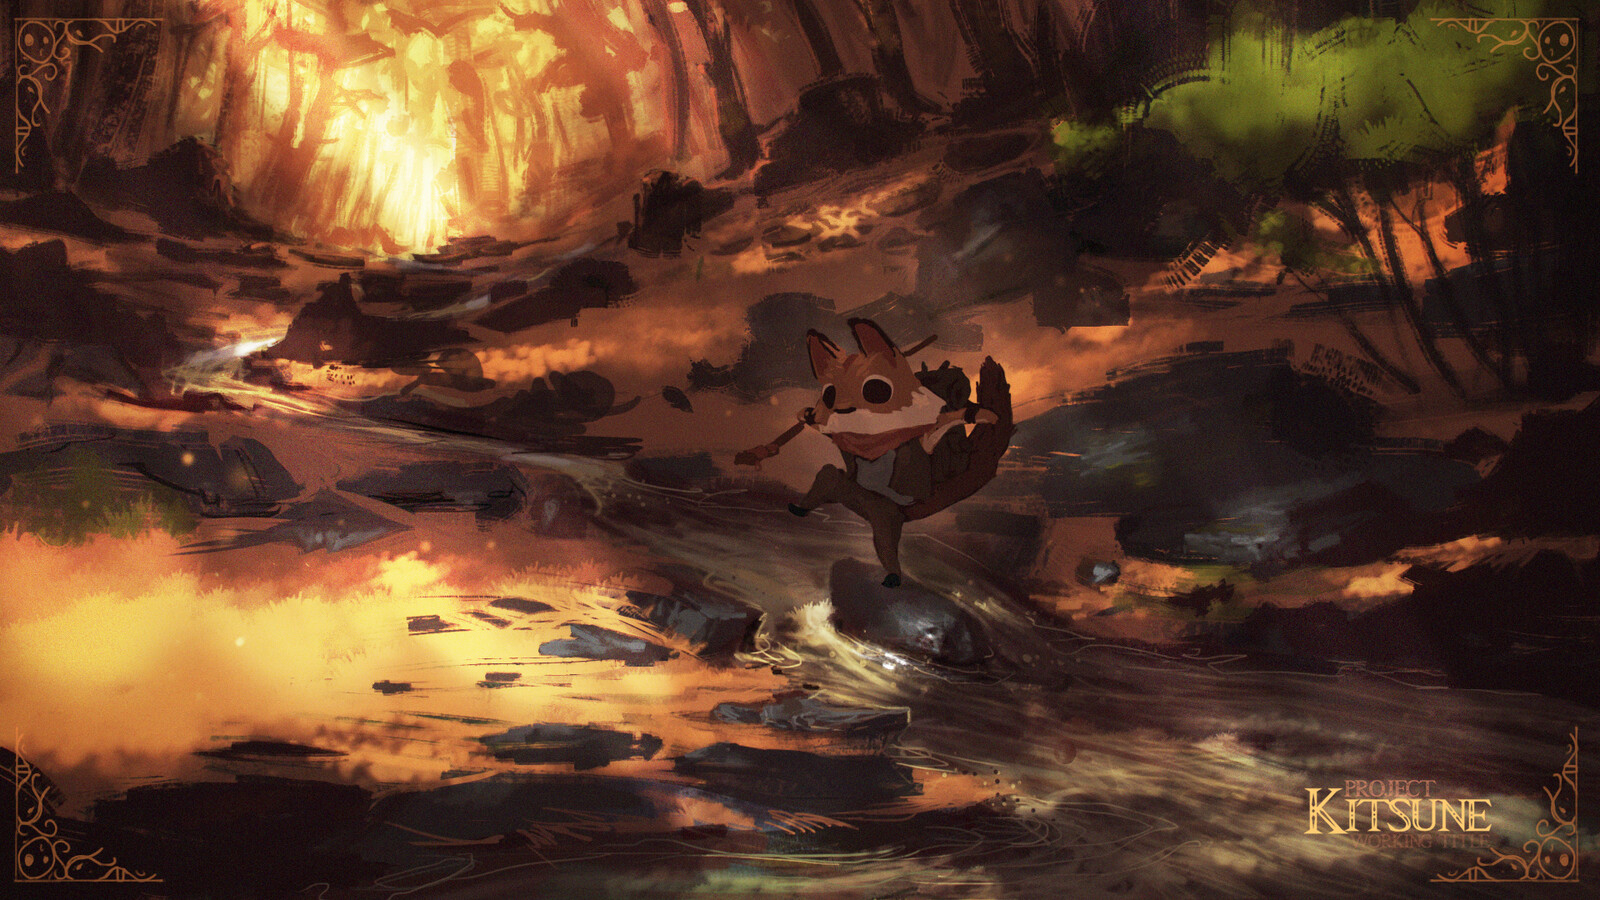 Crossing the stream. Scenic Speedpaint of the young fox leaving his home.